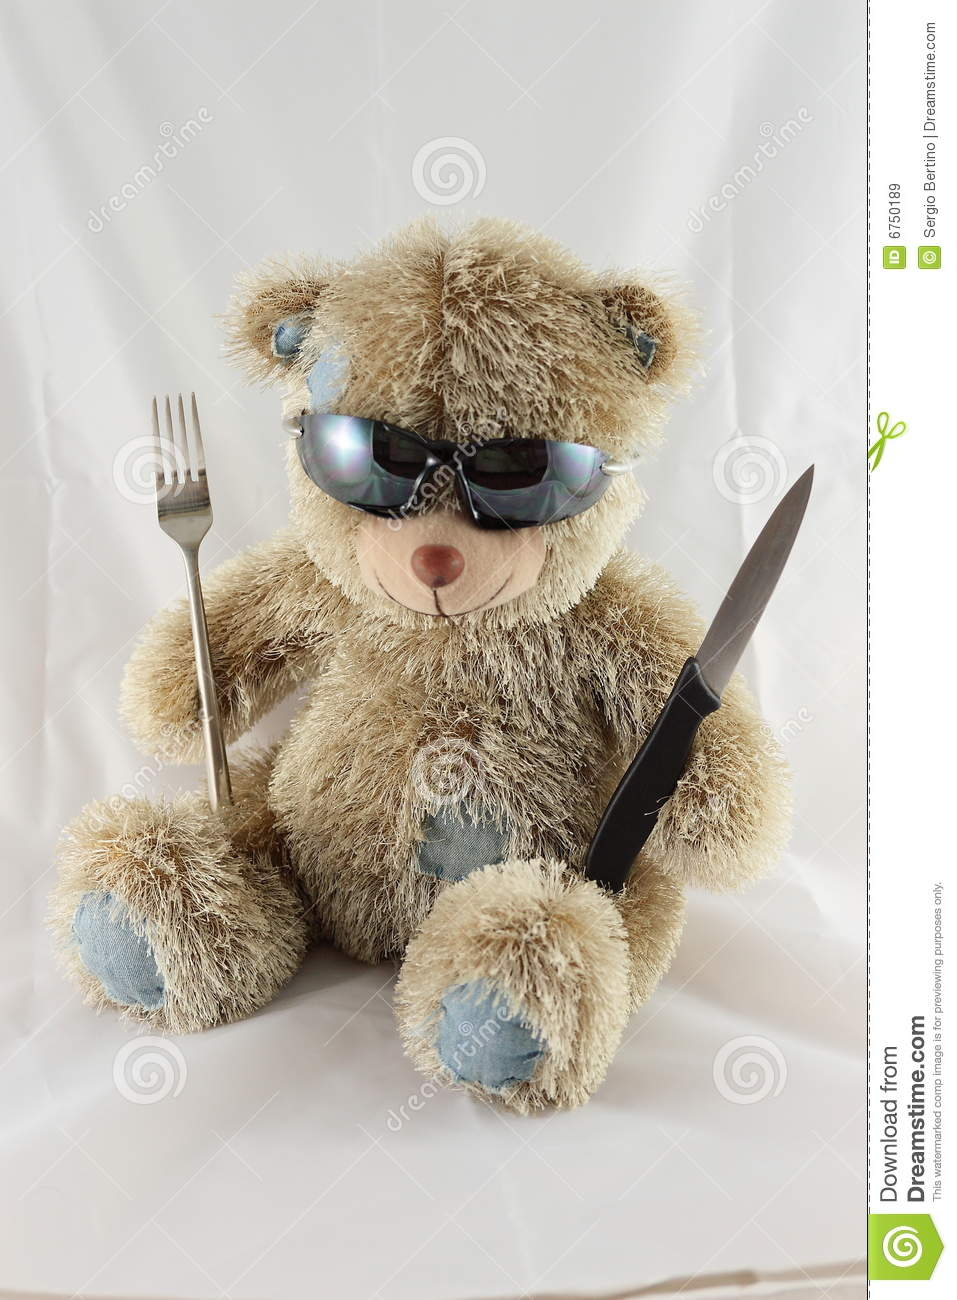 Hungry Teddy Bear Stock Image Image Of Tool Life Tools